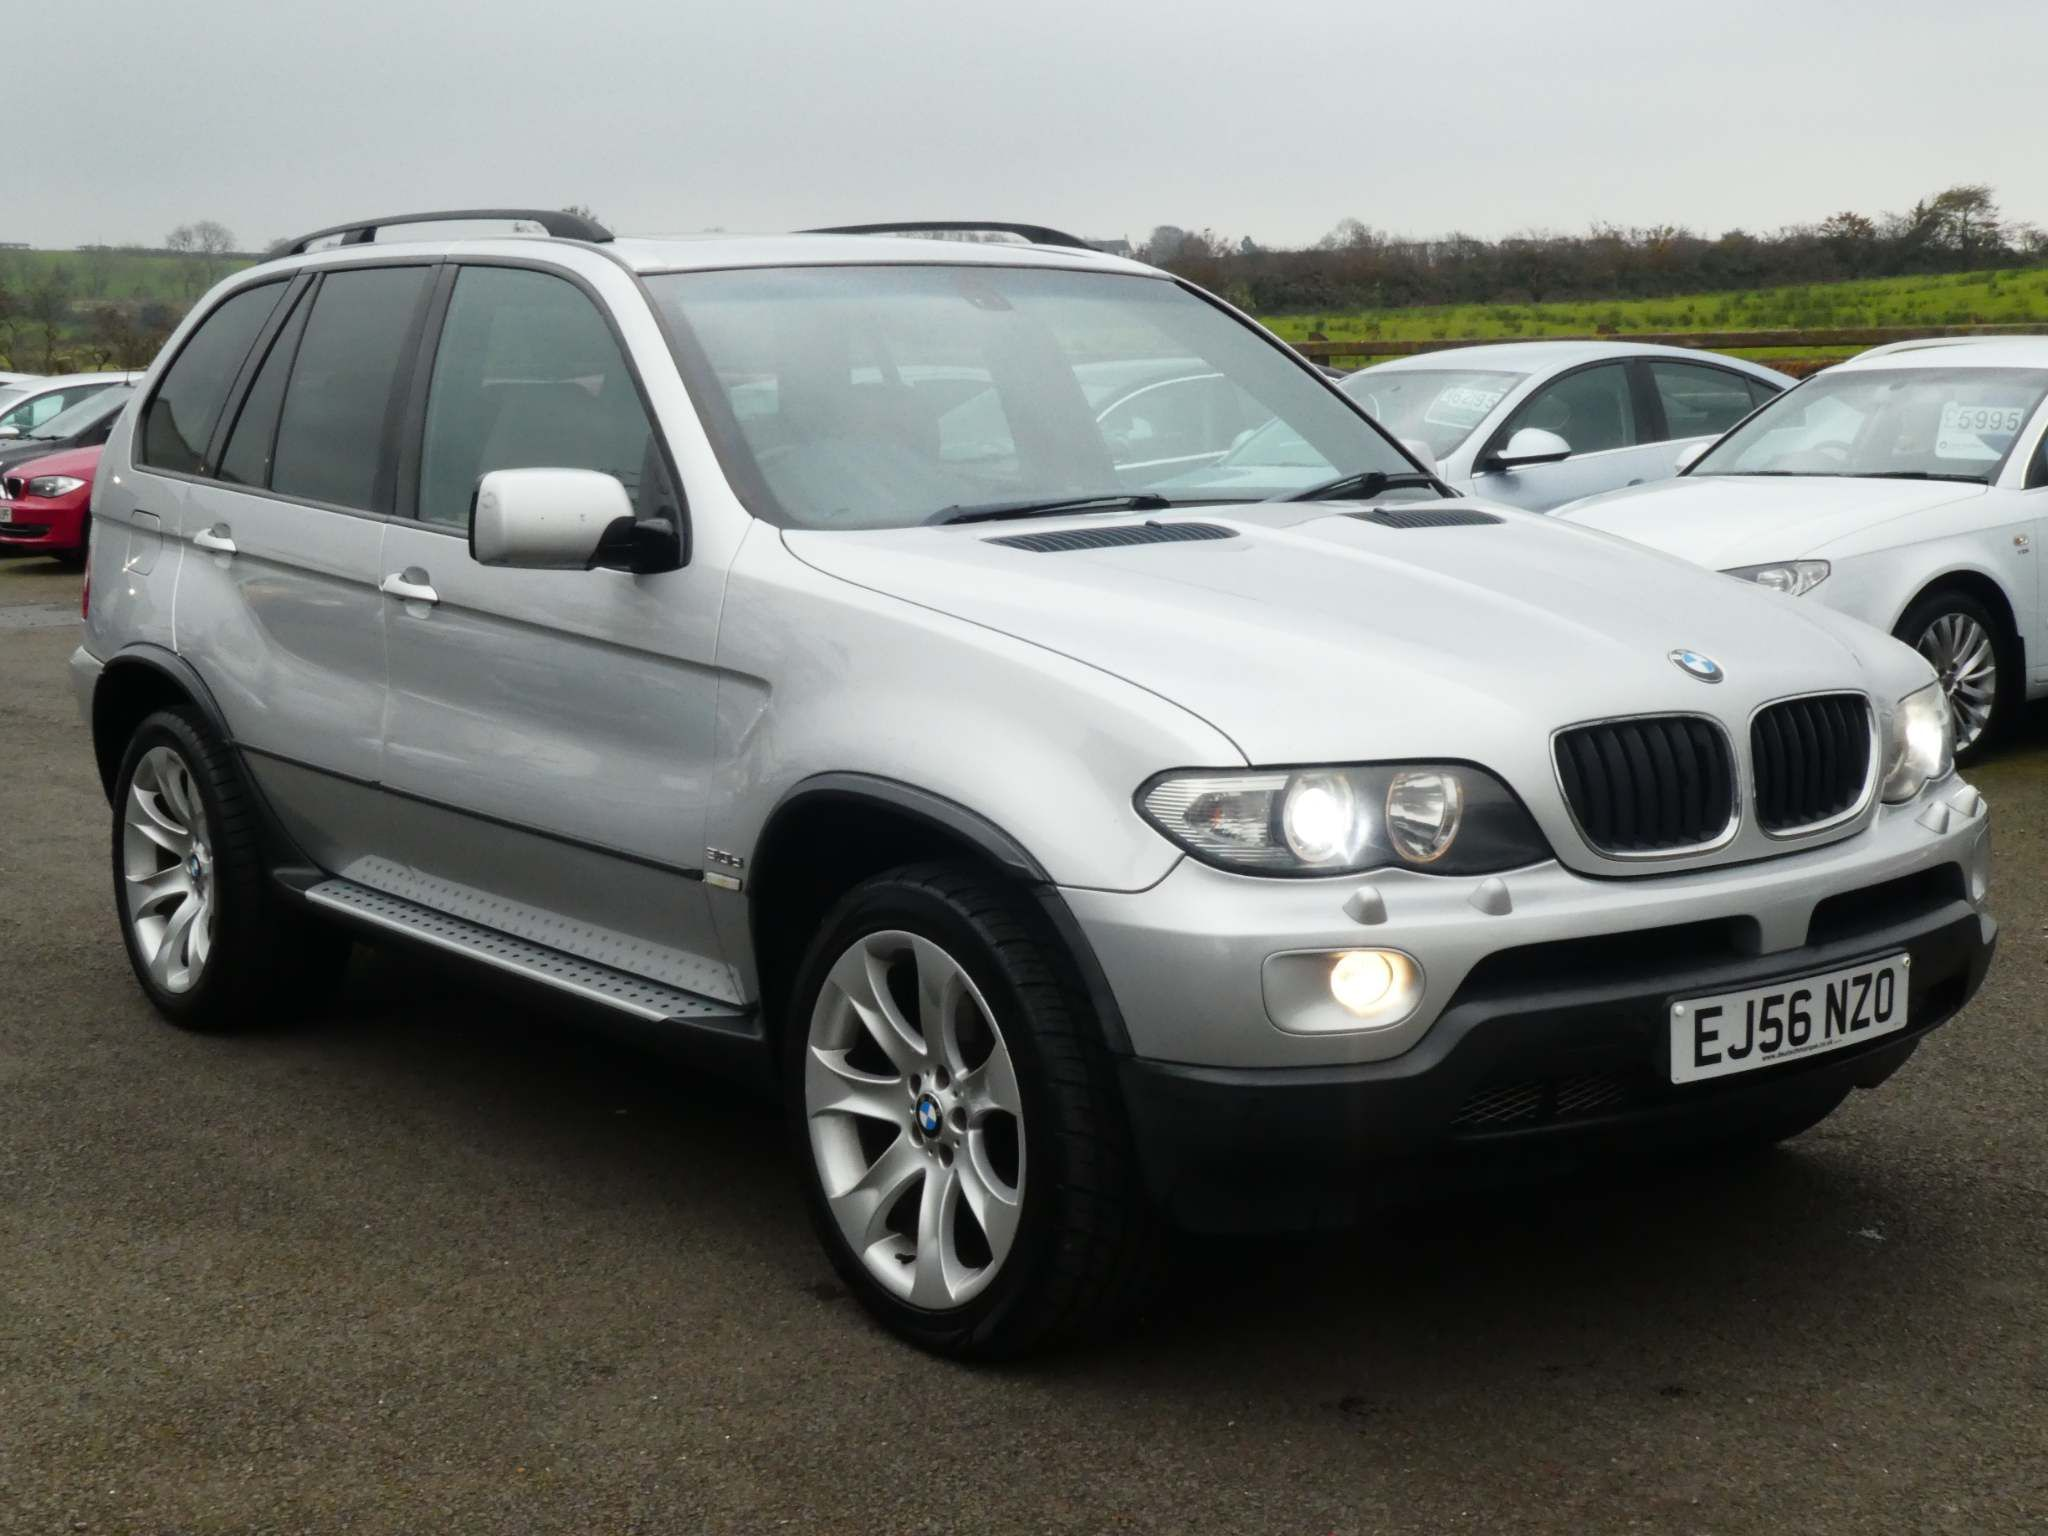 2006 BMW X5 3.0 d Sport Diesel Automatic excellent example – FC Motors 52 Carntall Rd, Newtownabbey BT36 5SD